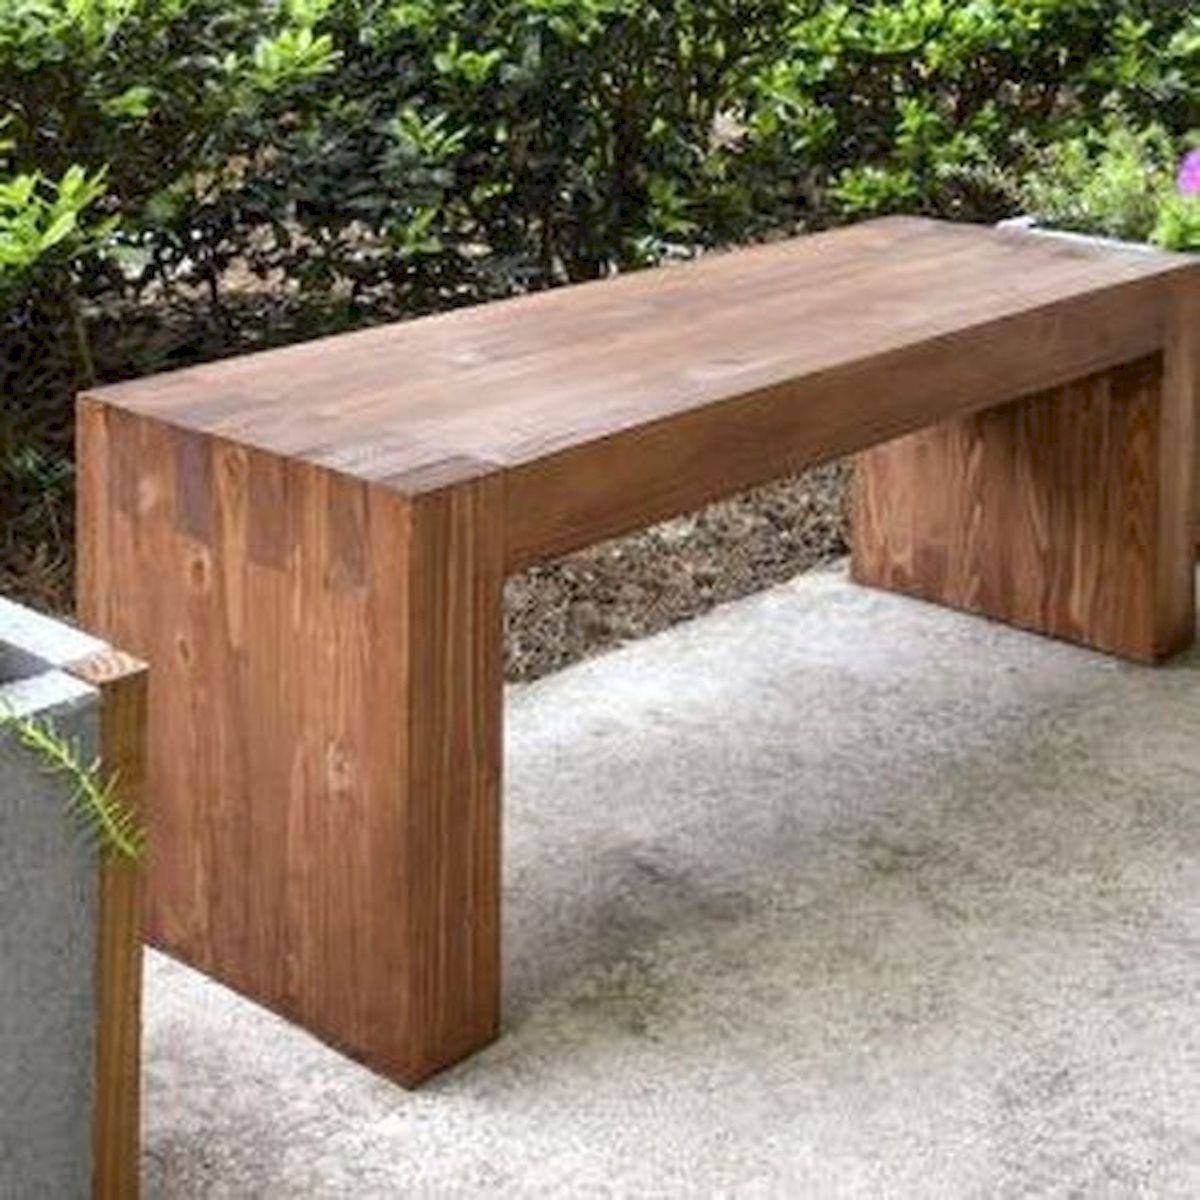 40 Awesome DIY Outdoor Bench Ideas For Backyard and Front Yard Garden (32)